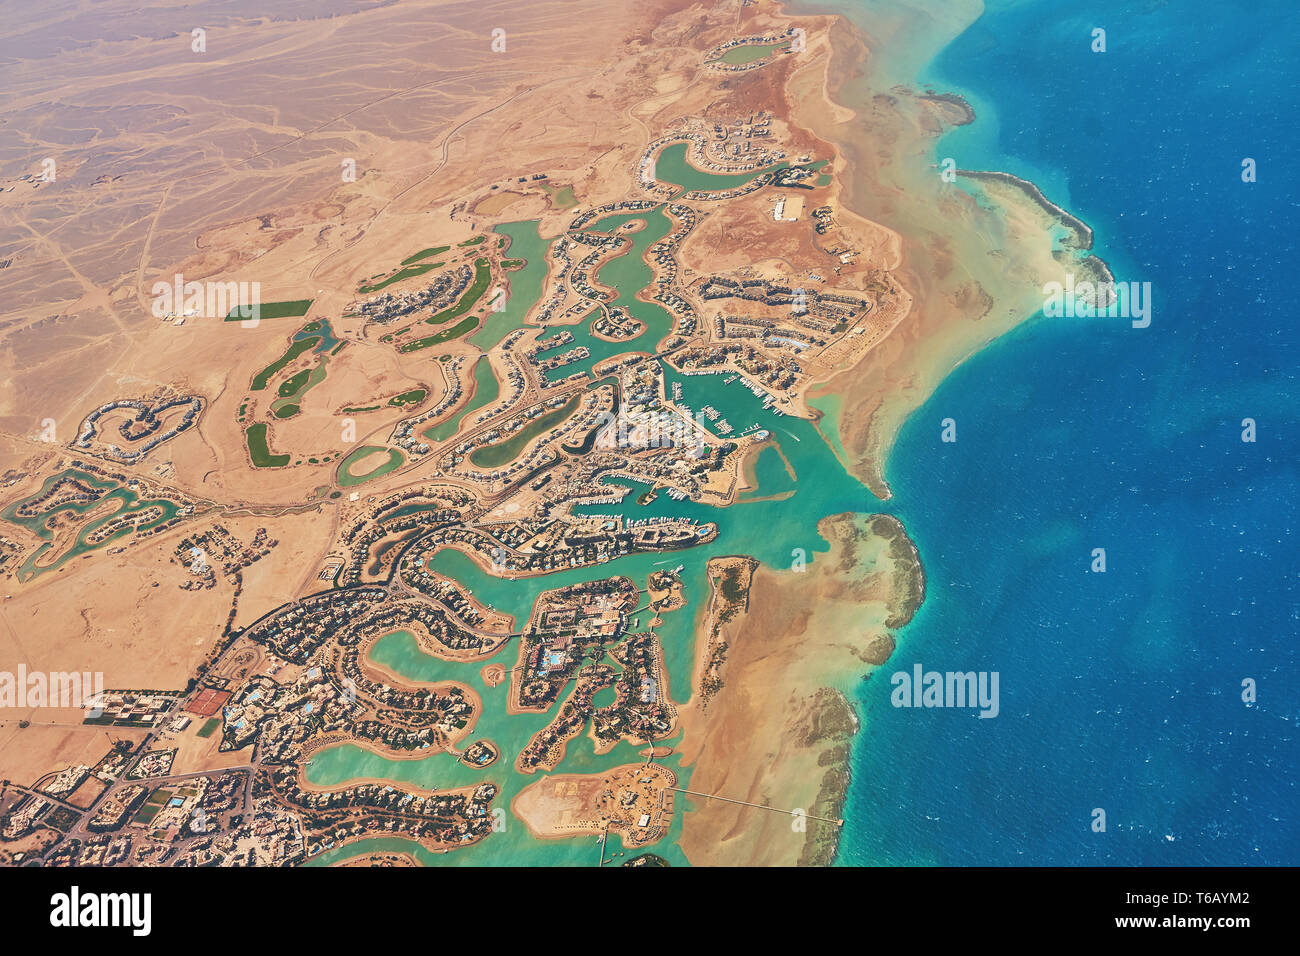 Aerial View Of El Gouna A Luxury Egyptian Tourist Resort Located On The Red Sea 20 Kilometres North Of Hurghada Stock Photo Alamy